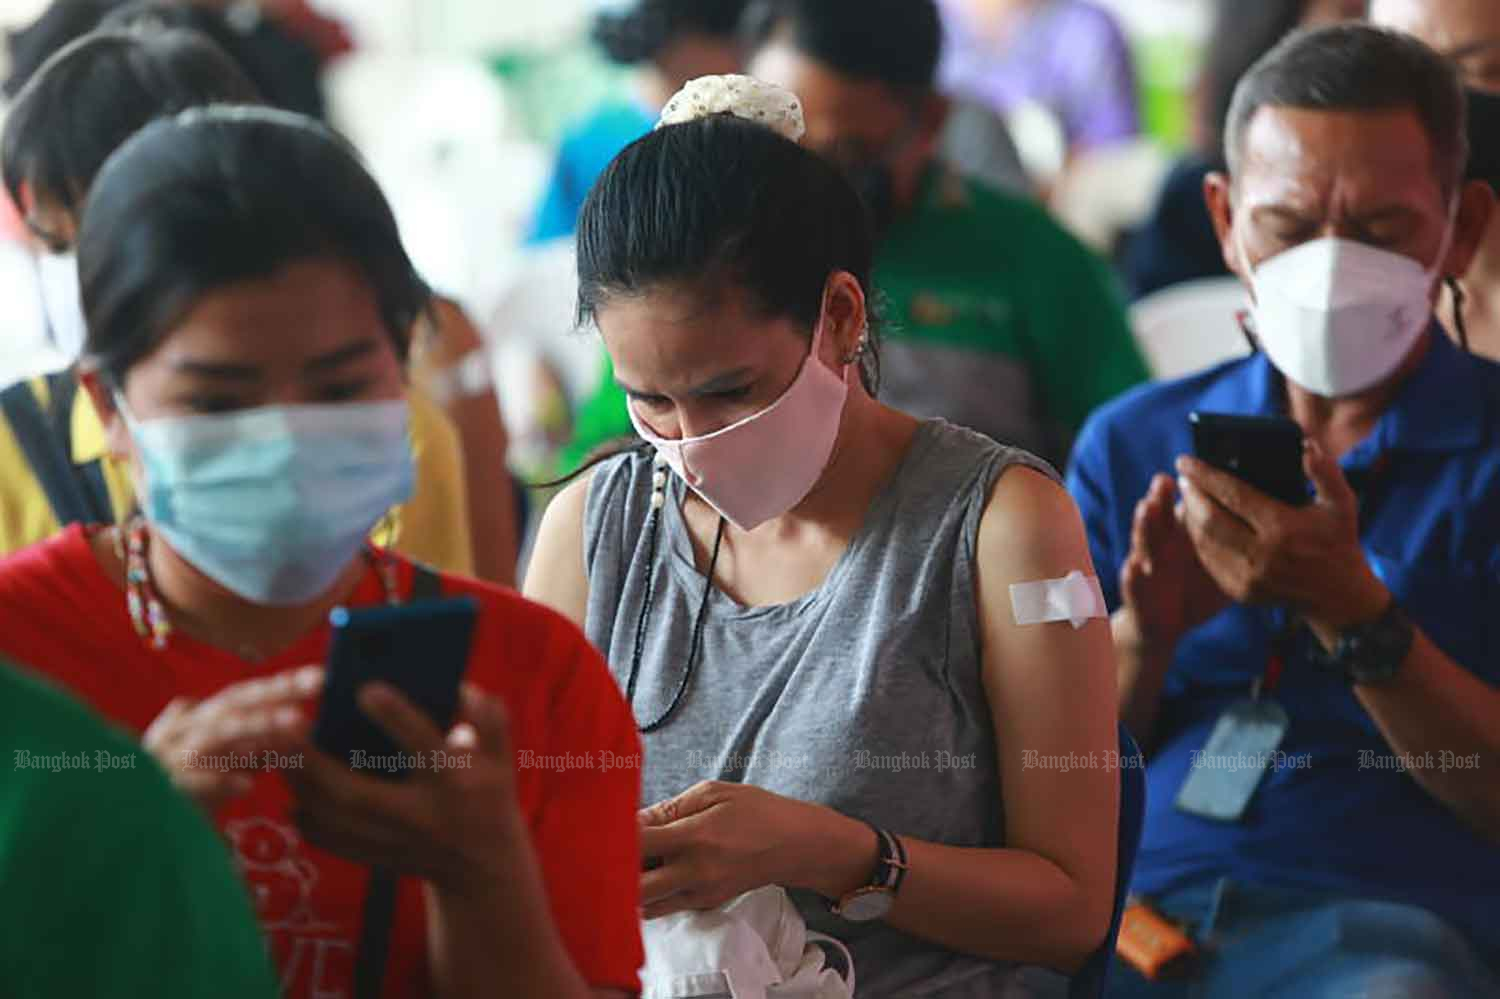 Covid-19 vaccine recipients wait to have their conditions monitored after inoculation in Klong Toey district, Bangkok, on Tuesday. (Photo: Somchai Poomlard)